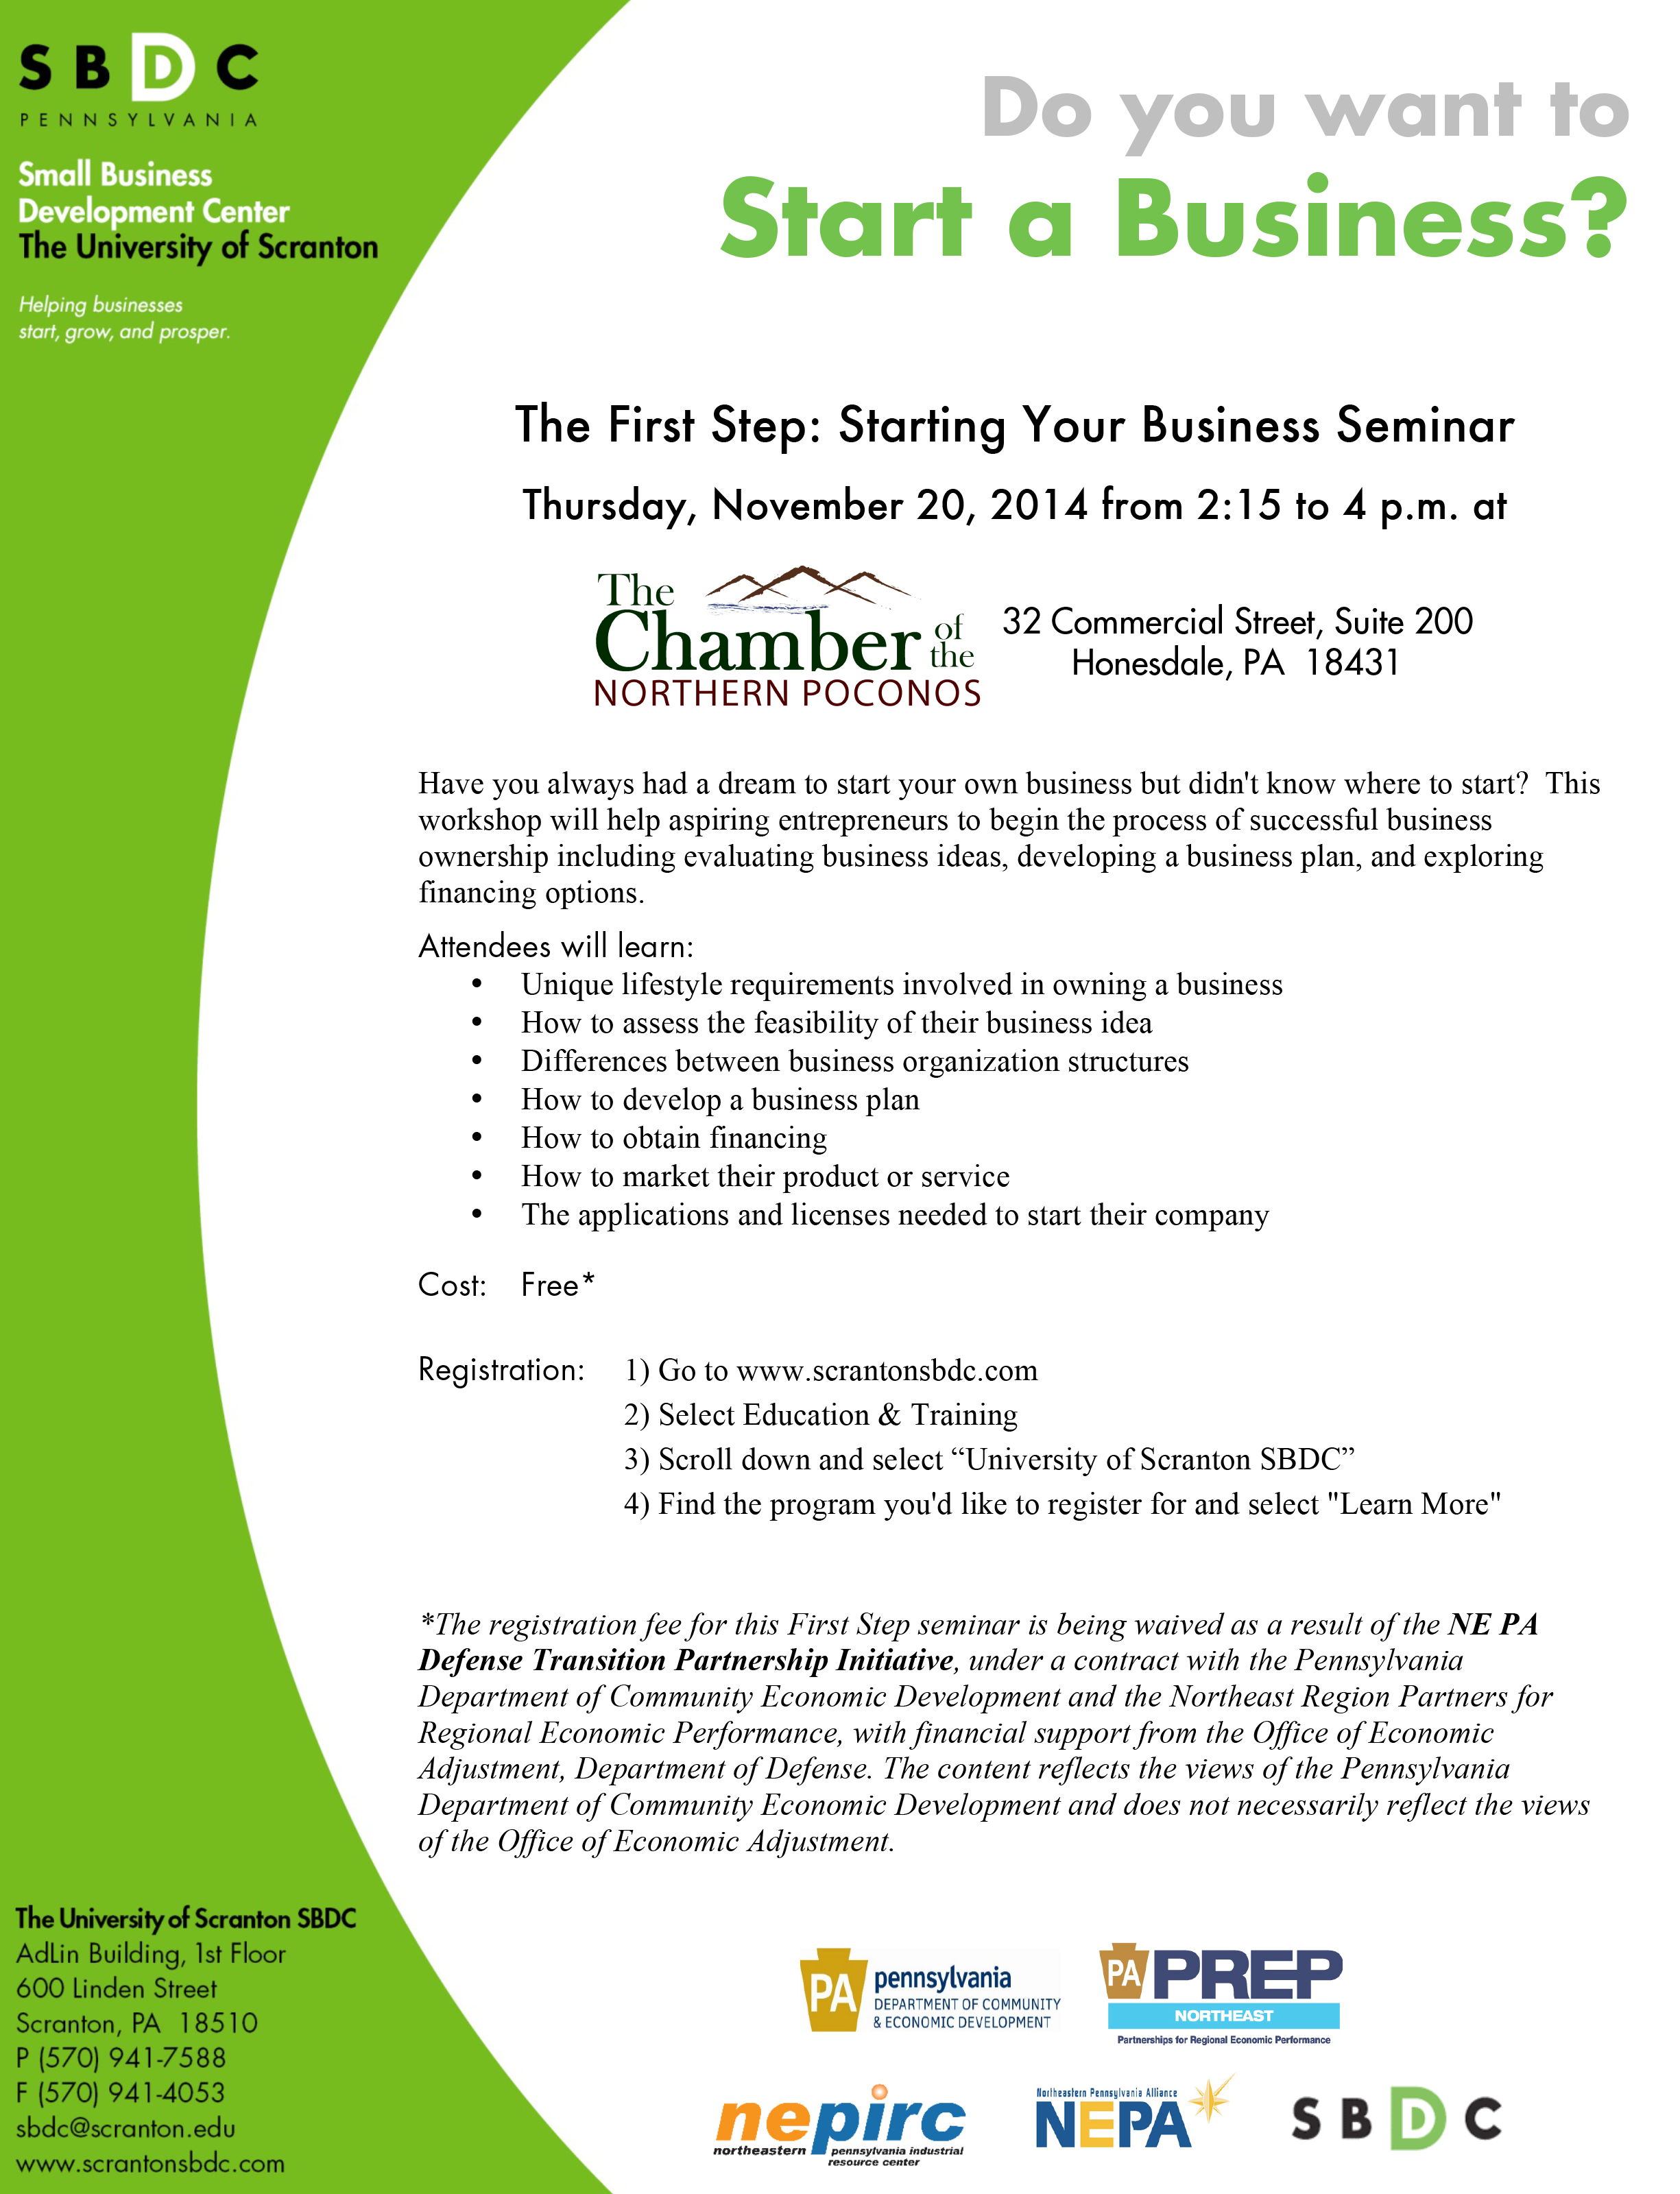 stating a business seminar Honesdale